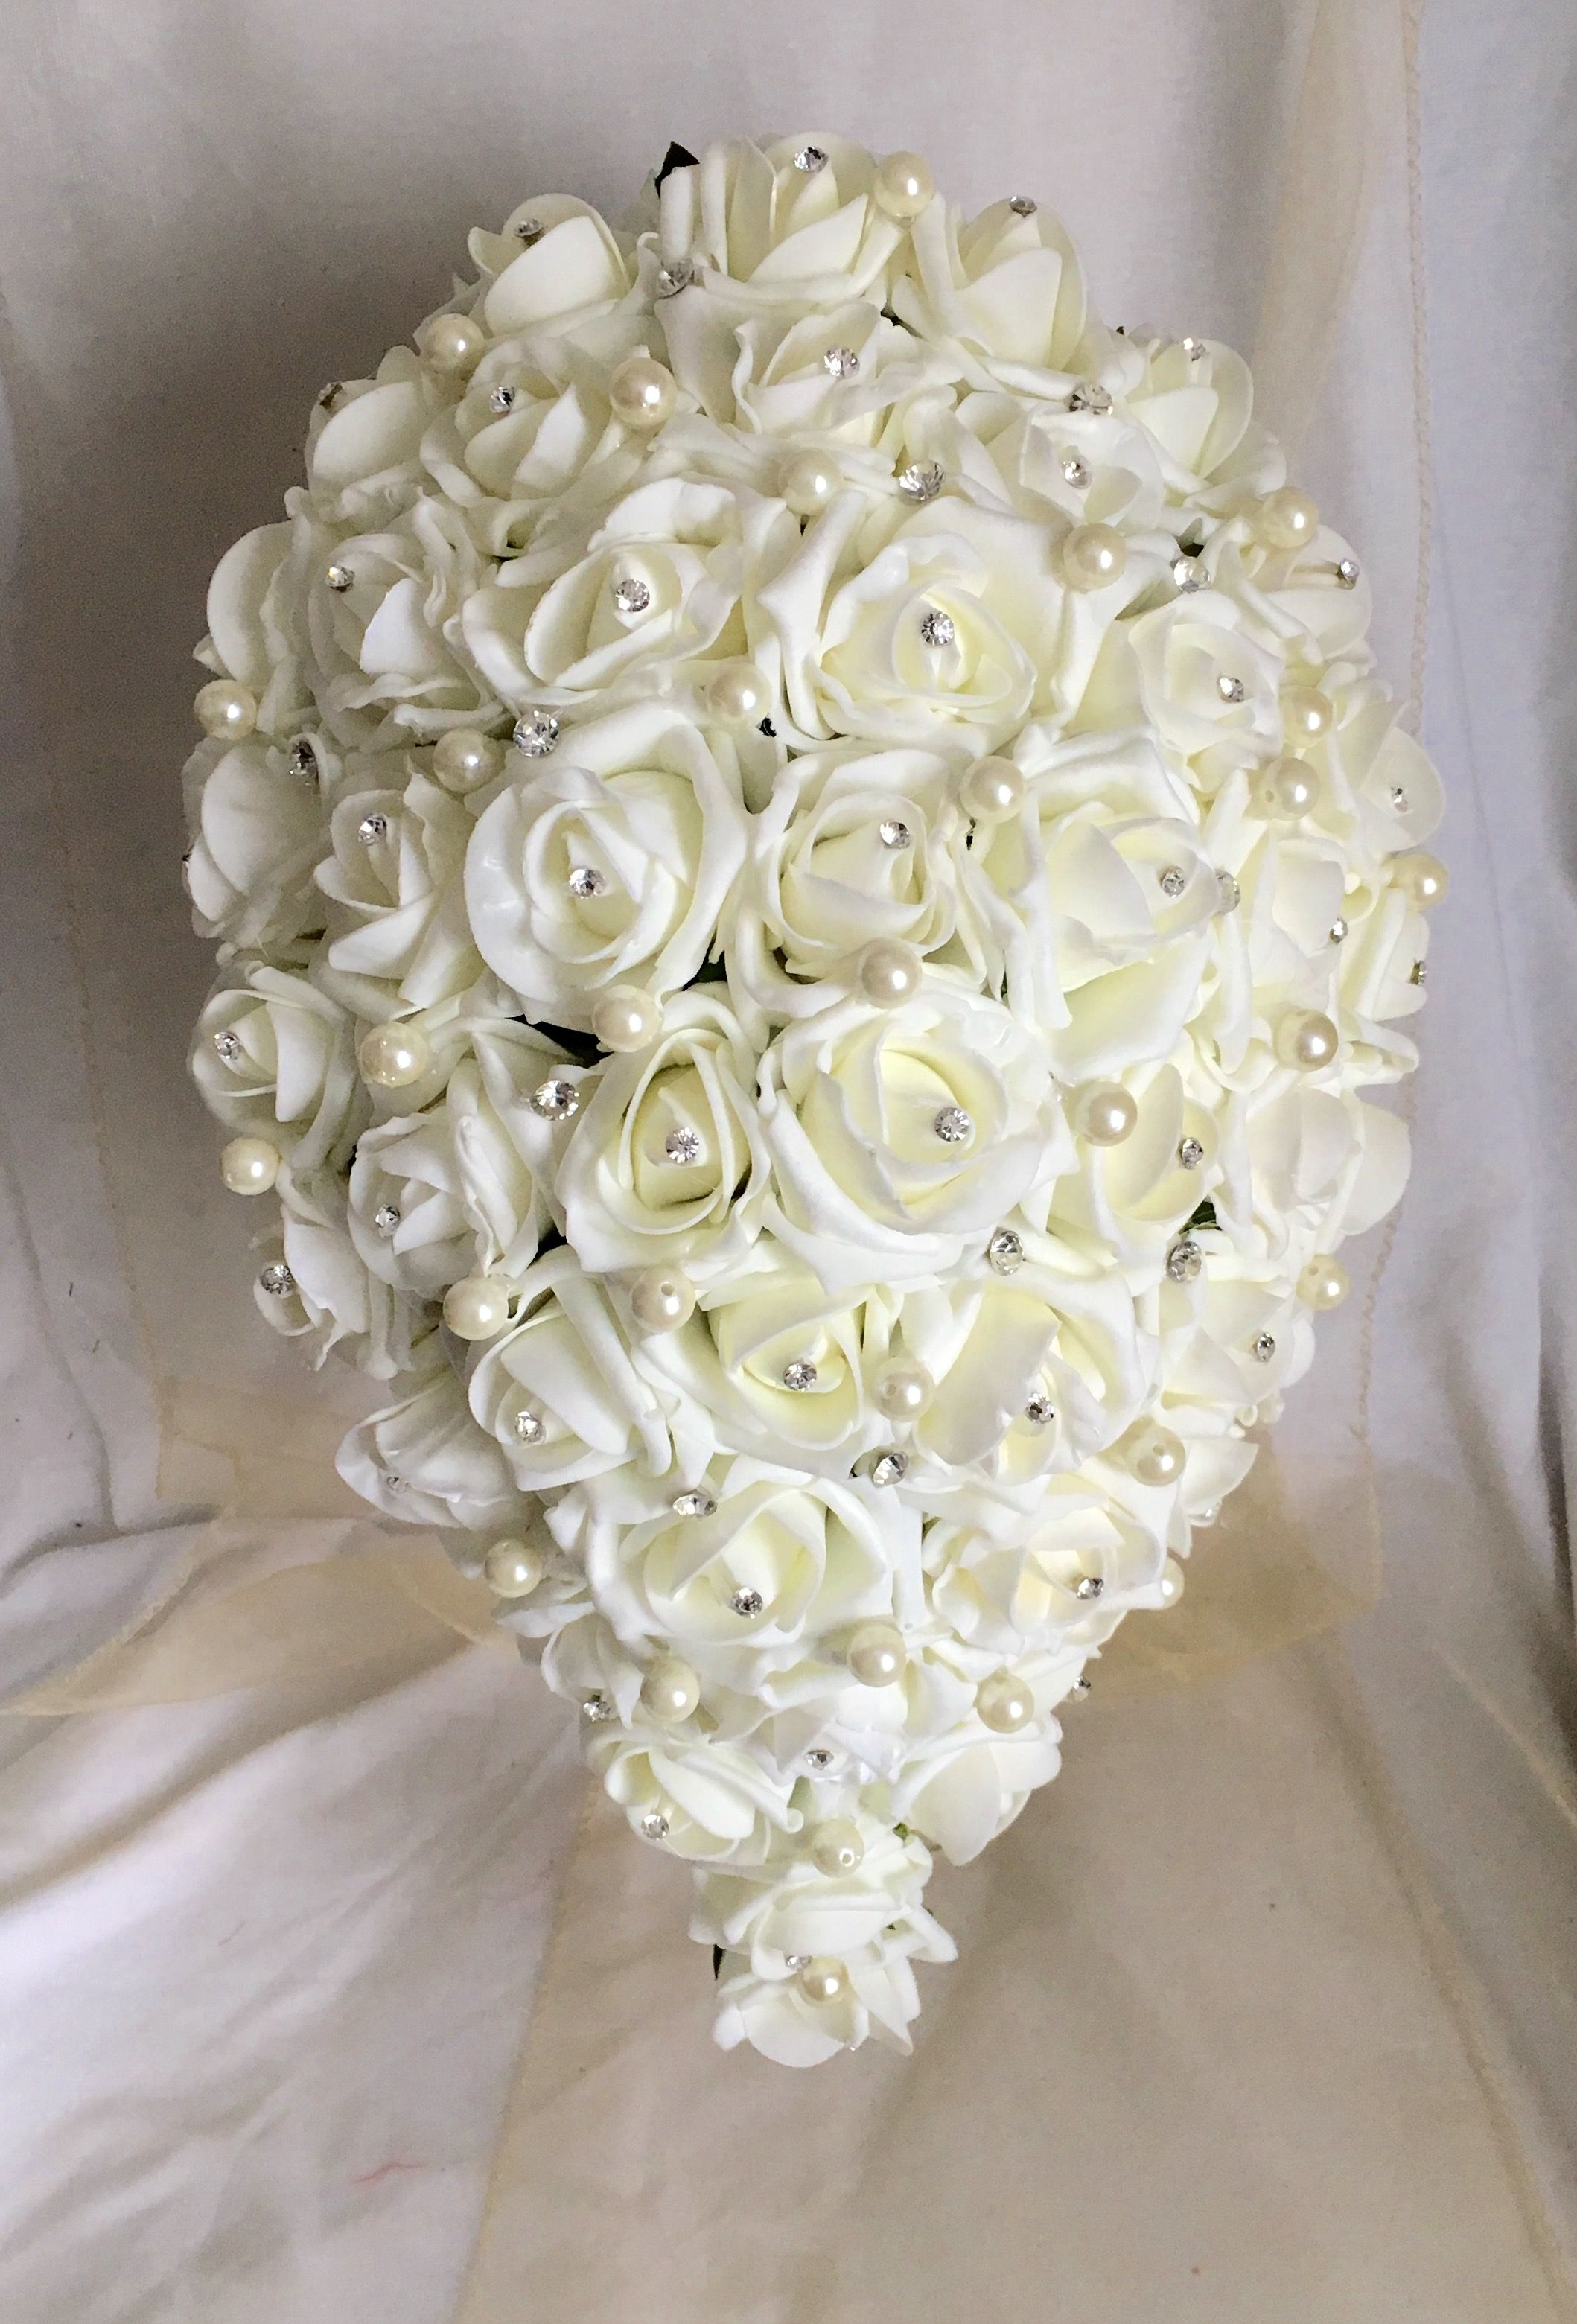 Brides bridal pearl and rose wedding bouquets White or Ivory teardrop